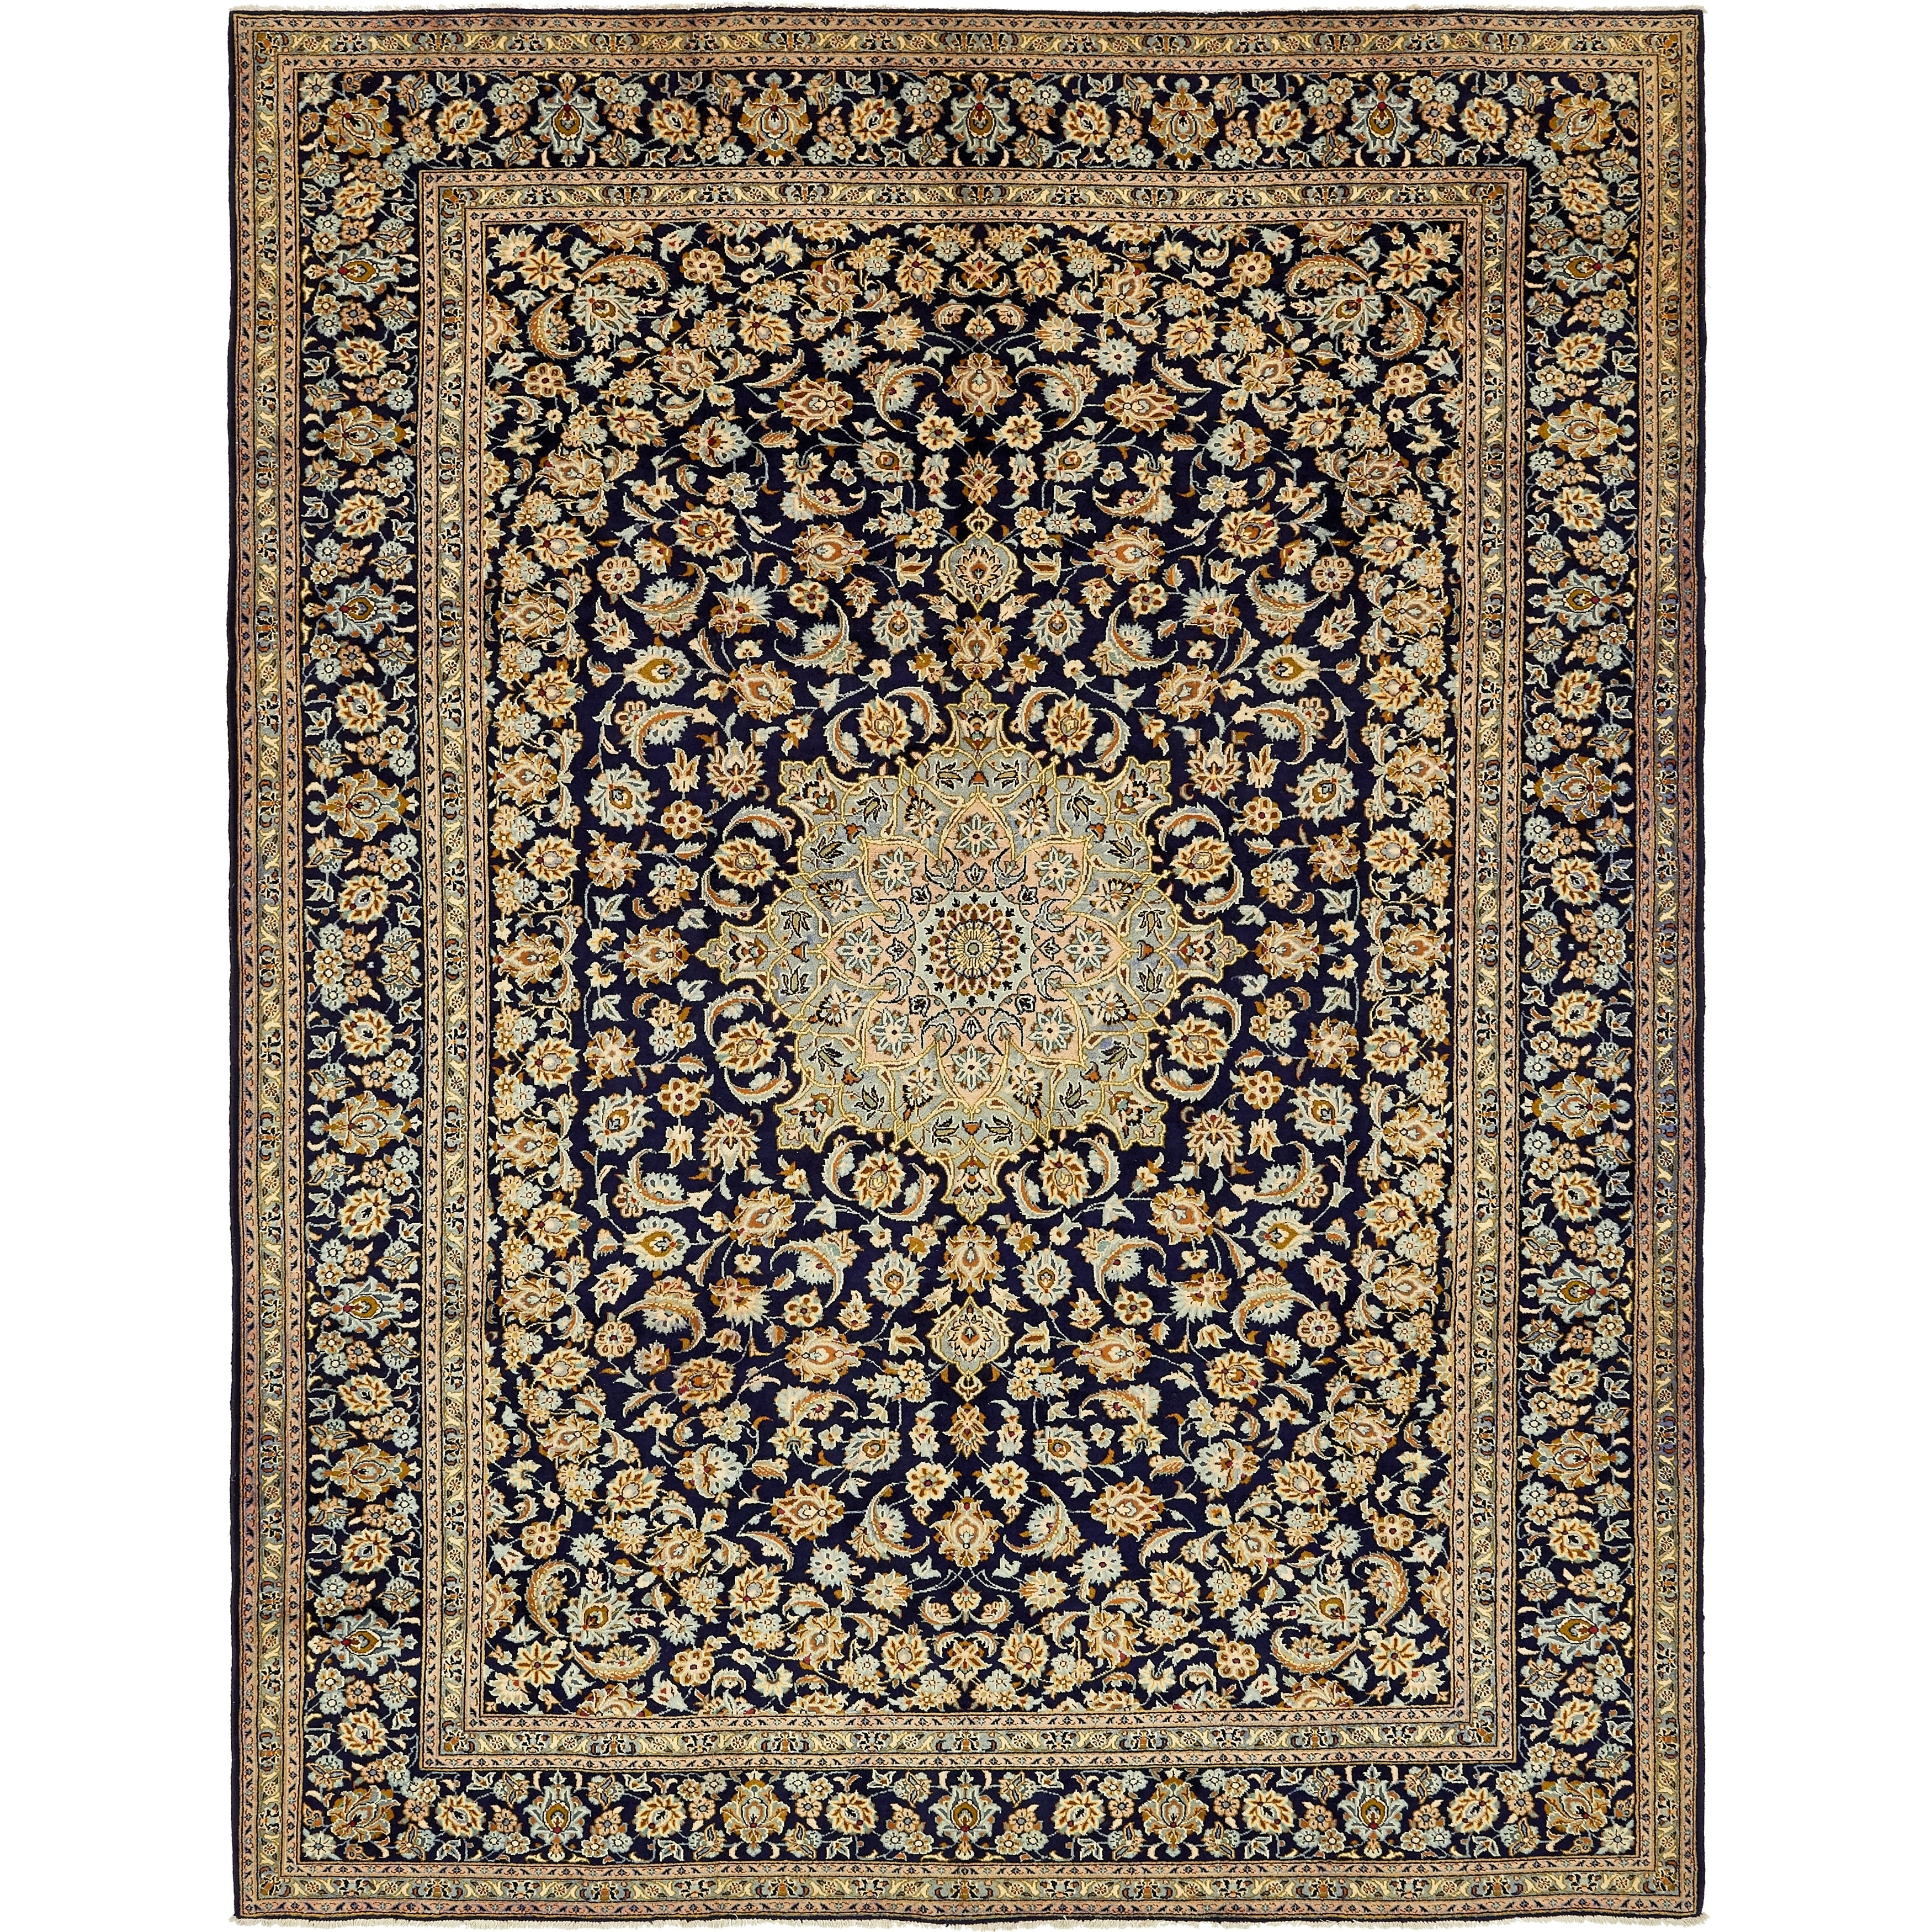 Hand Knotted Kashan Semi Antique Wool Area Rug - 9 10 x 12 10 (Navy blue - 9 10 x 12 10)